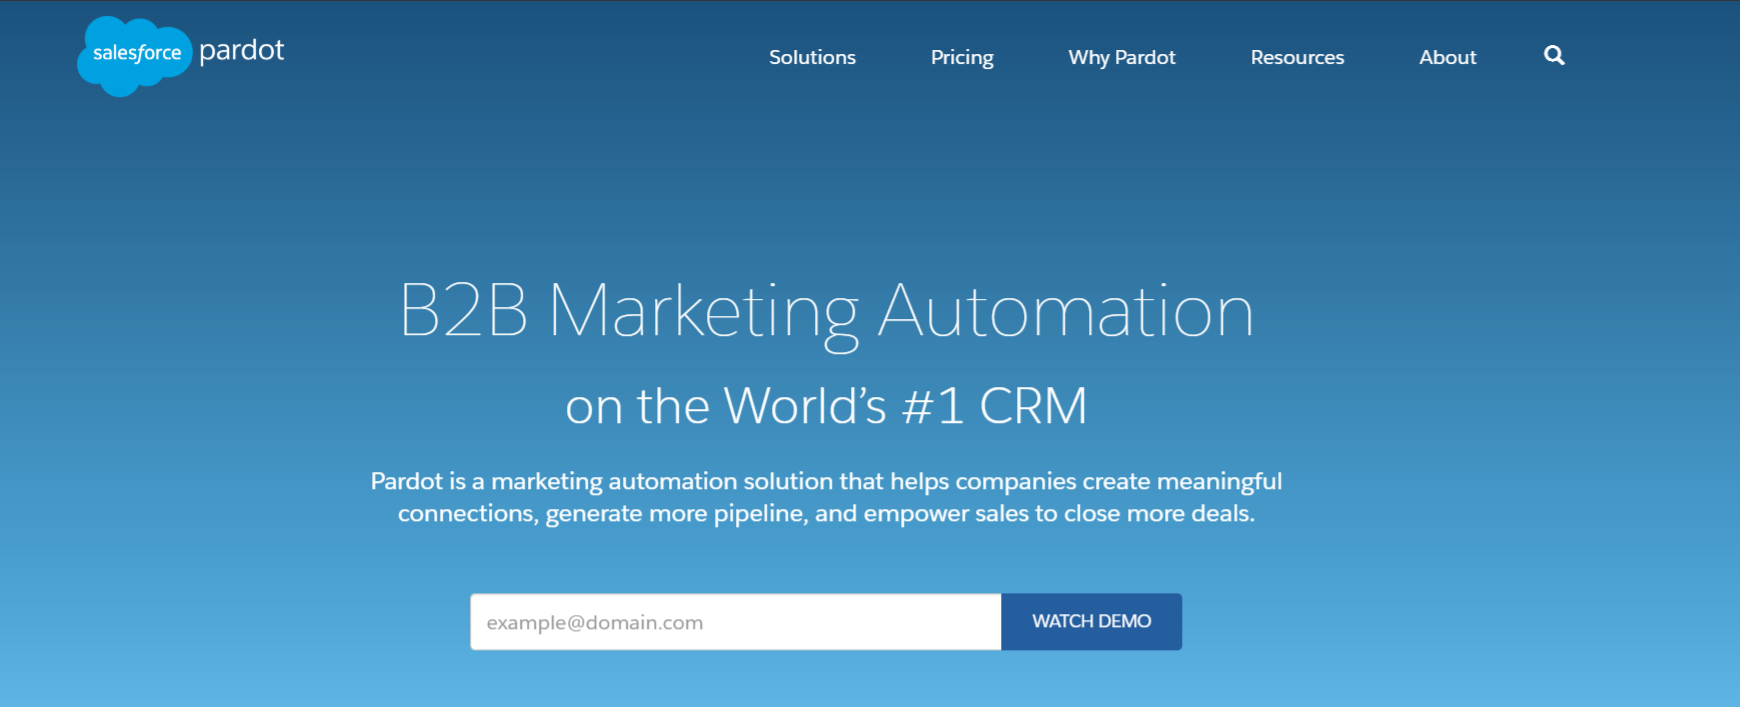 Pardot: Online marketing automation tool